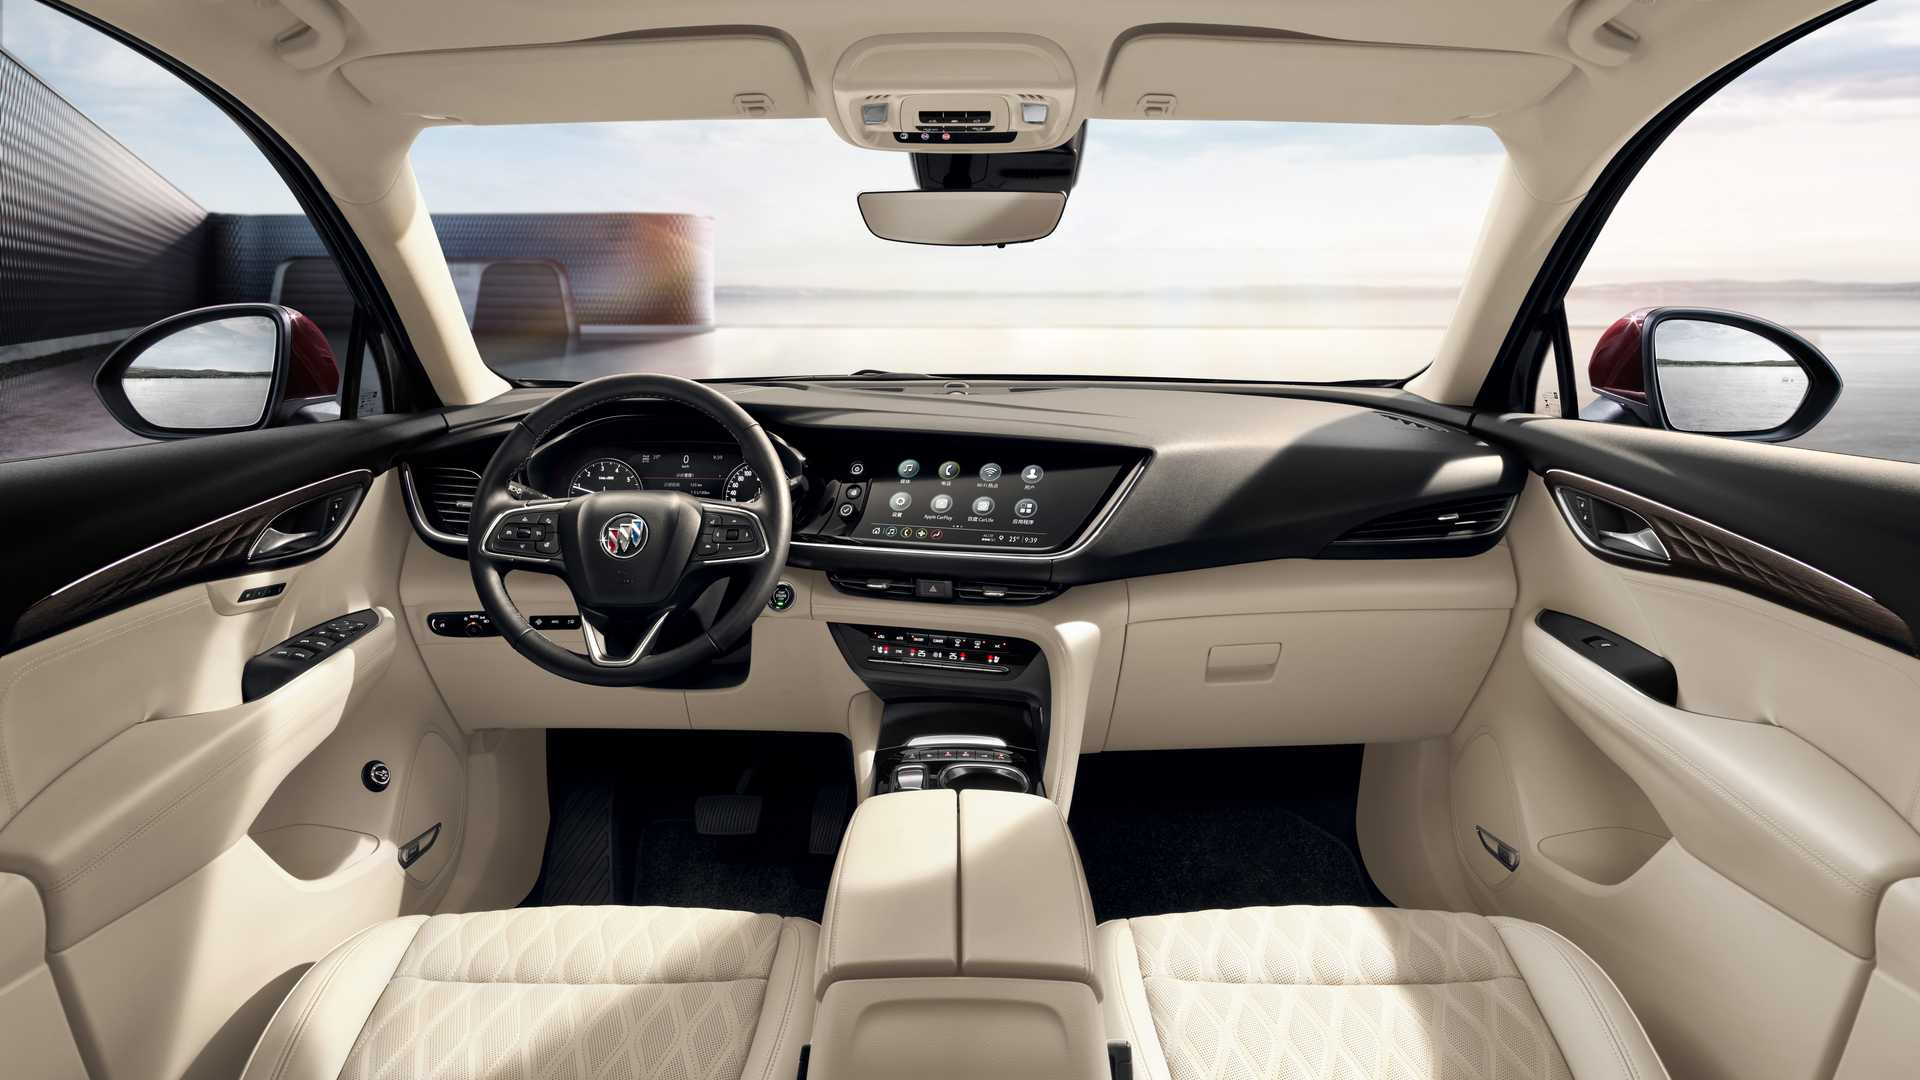 2021 Buick Envision Reveals Sophisticated Interior In New 2022 Buick Envision Hp, Incentives, Infotainment Manual